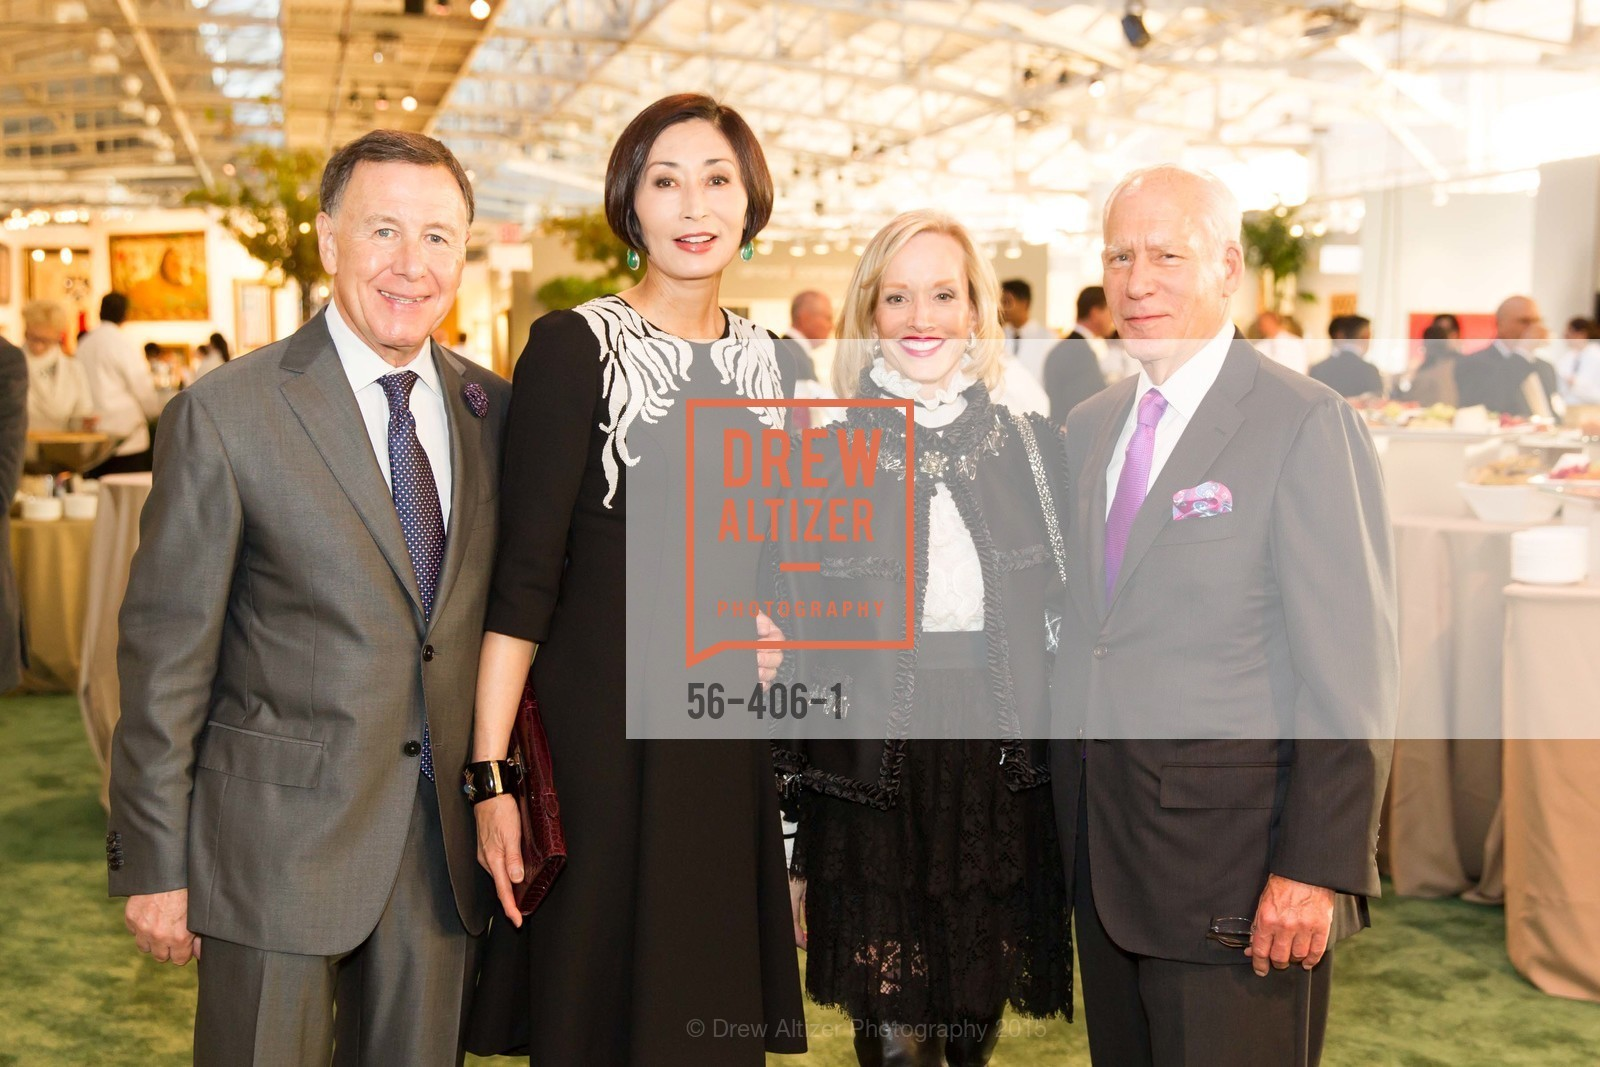 Carl Pascarella, Yurie Pascarella, OJ Shansby, Gary Shansby, The San Francisco Fall Antiques Show, Festival Pavilion, Fort Mason, October 21st, 2015,Drew Altizer, Drew Altizer Photography, full-service agency, private events, San Francisco photographer, photographer california